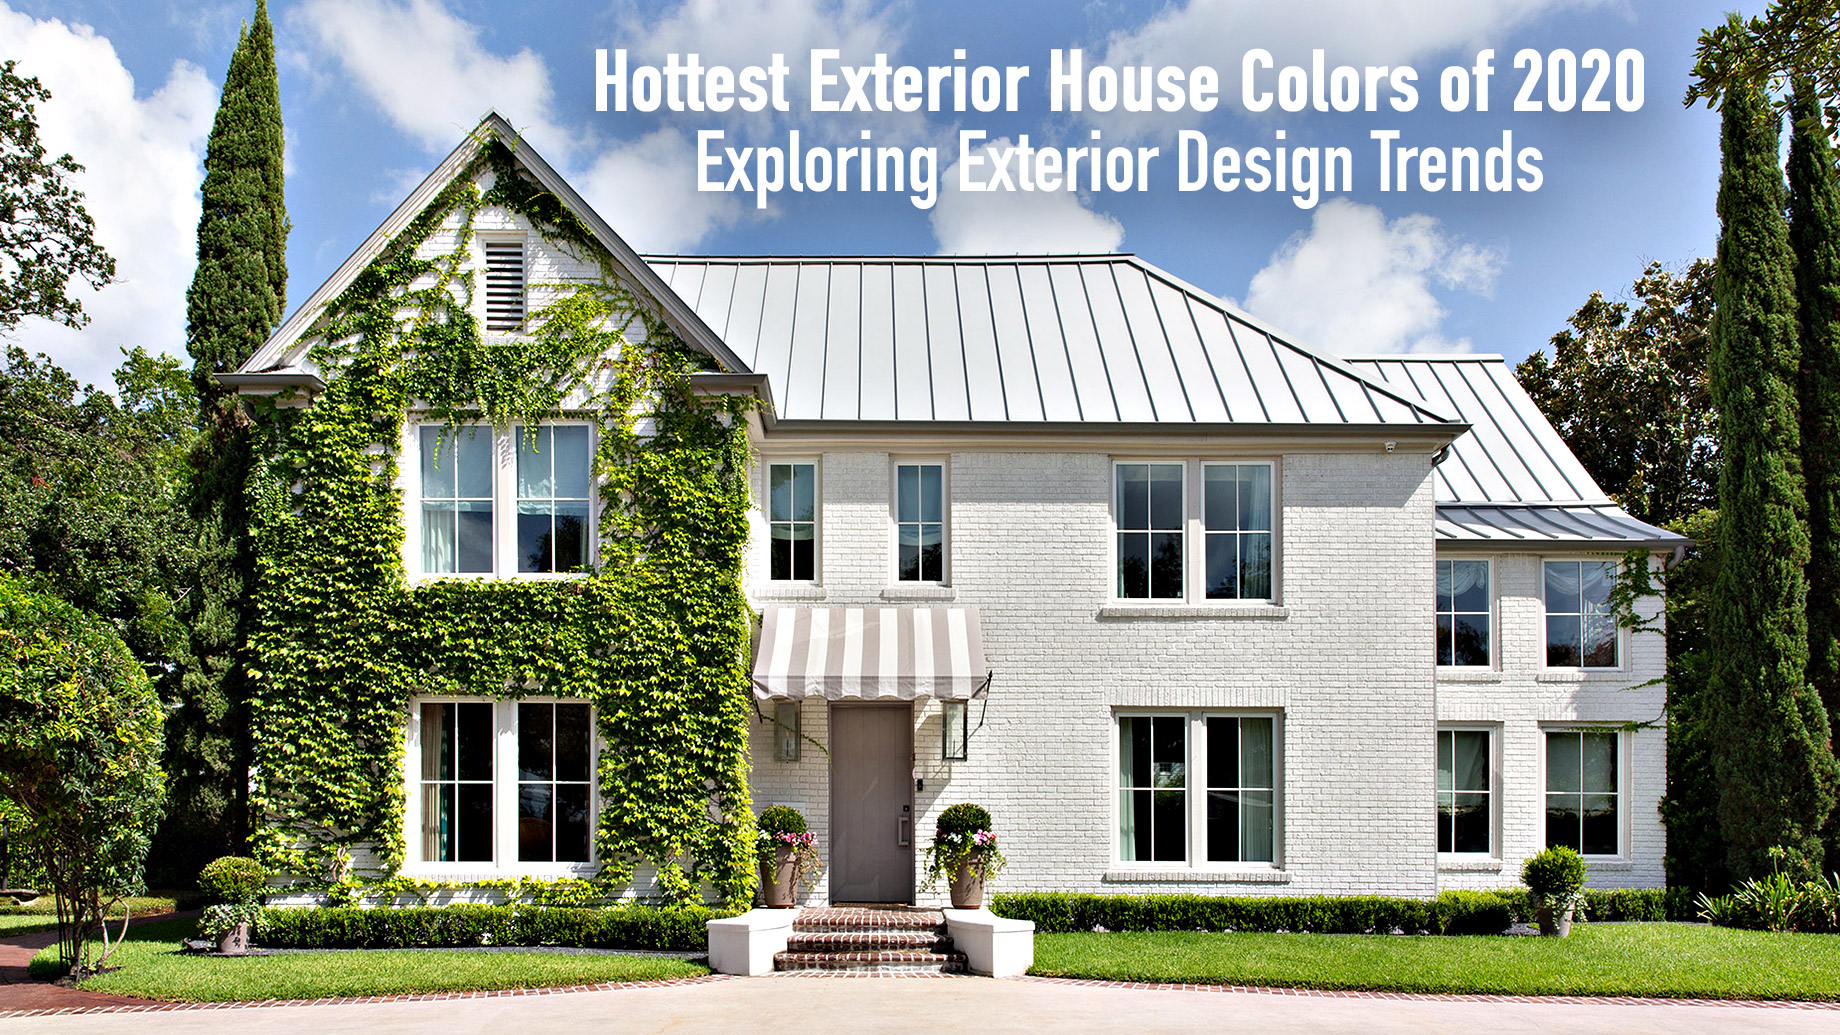 Hottest Exterior House Colors Of 2020 Exploring Exterior Design Trends The Pinnacle List